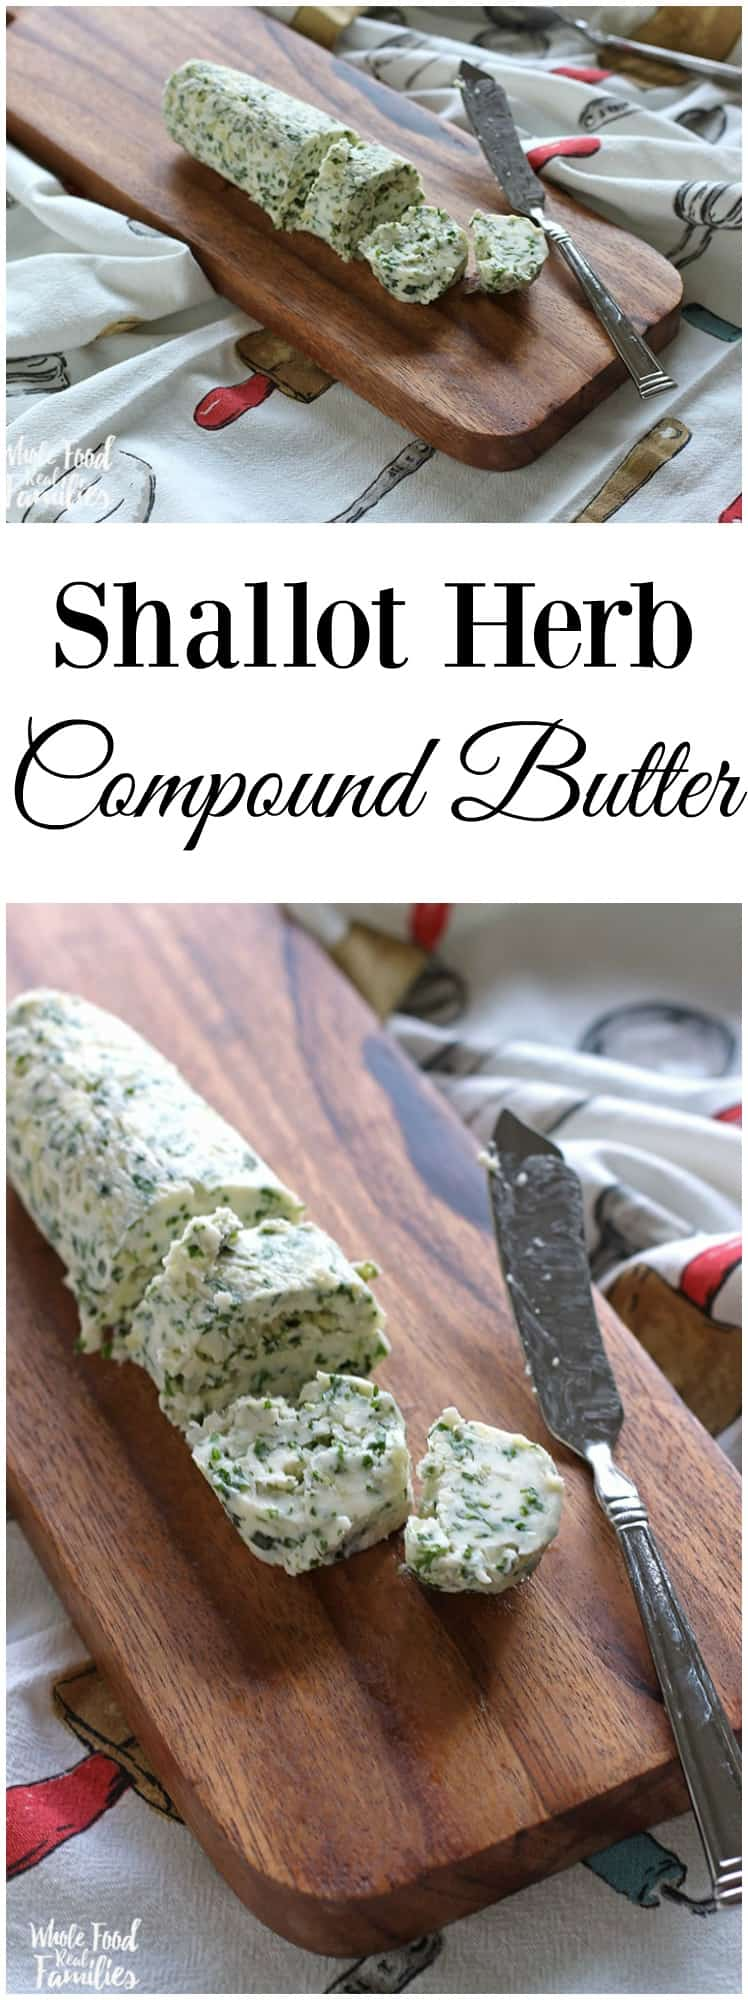 Ready to step up your butter game? This Shallot Herb Compound Butter is going to dress everything up.